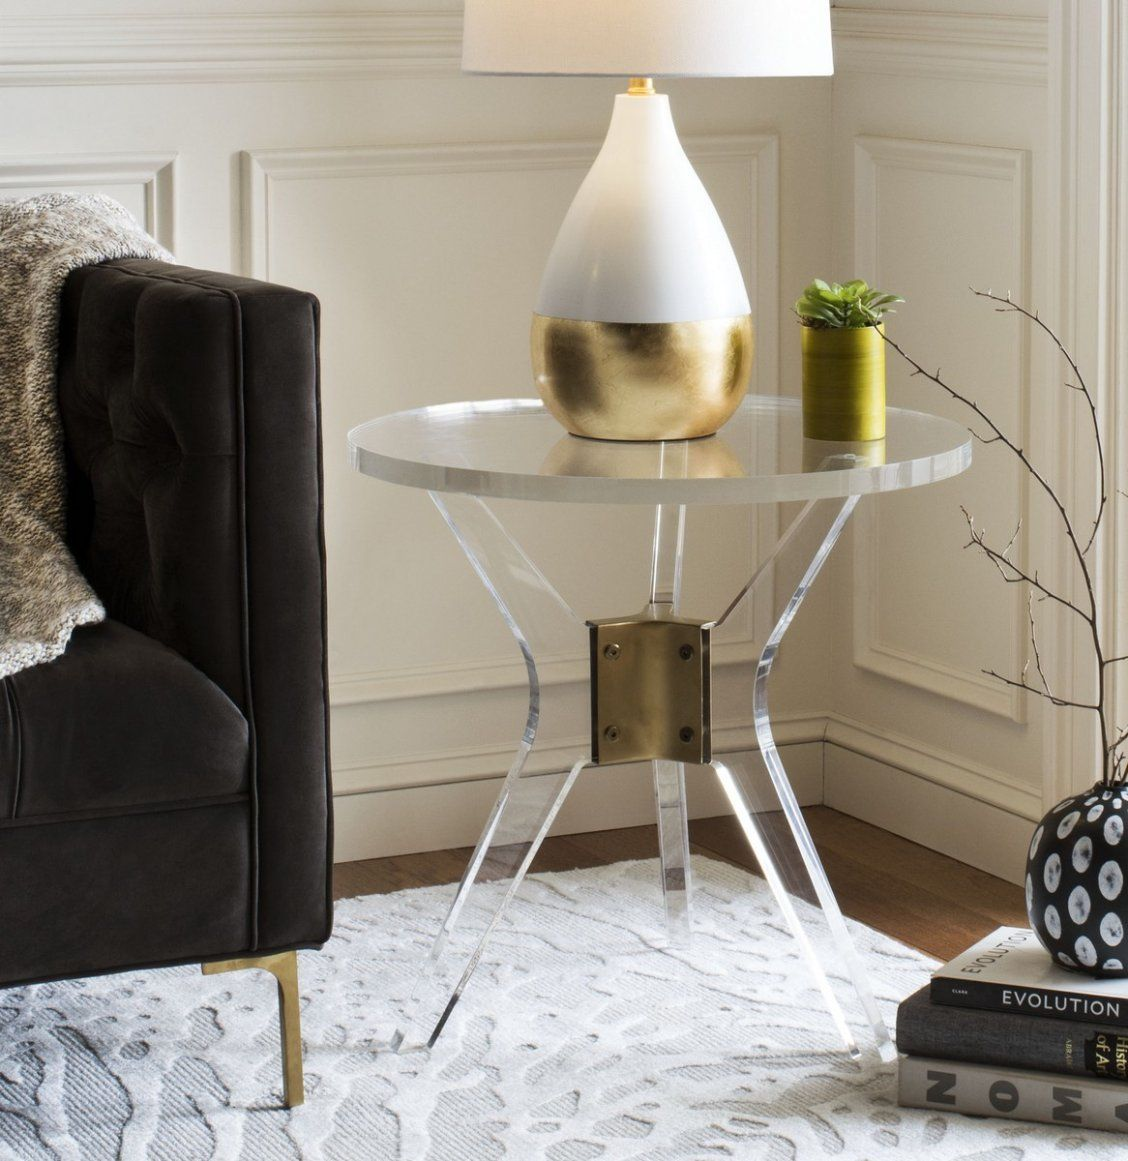 Add An Instant Designer Touch To Any Living Room With This Contemporary Acrylic End Table Boasting High Style Its Bold Metallic Br Detail And